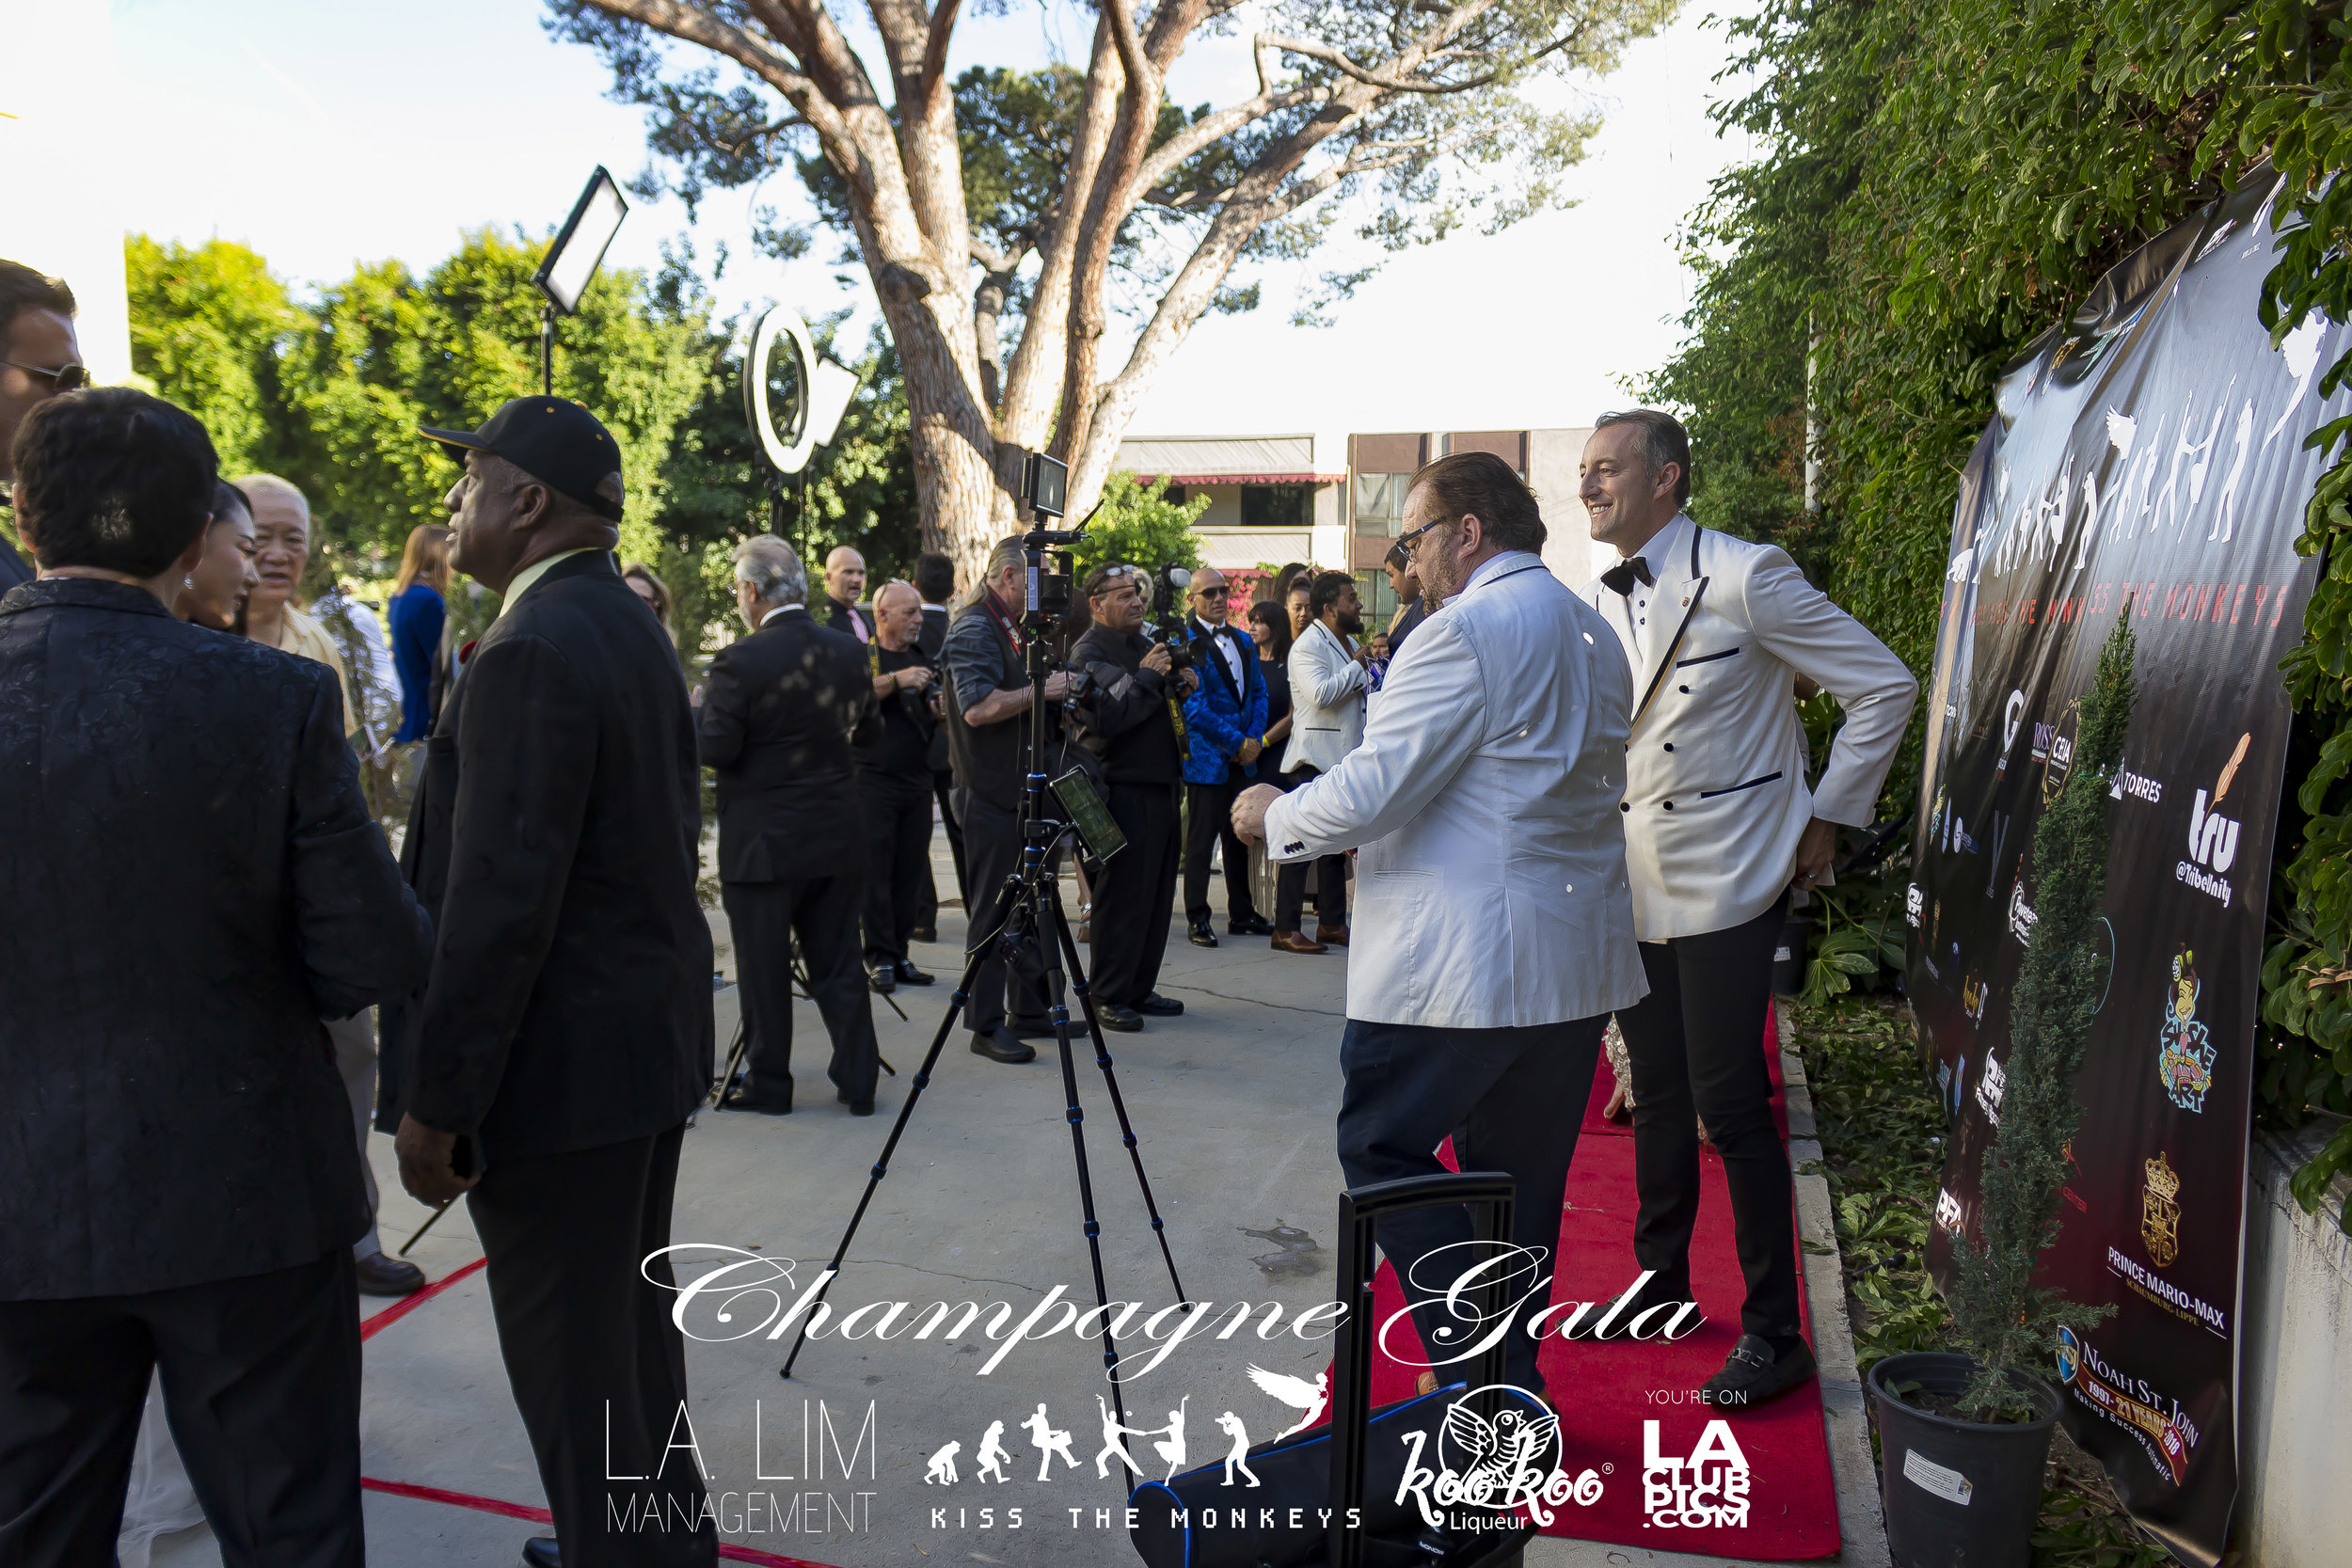 Kiss The Monkeys - Champagne Gala - 07-21-18_3.jpg